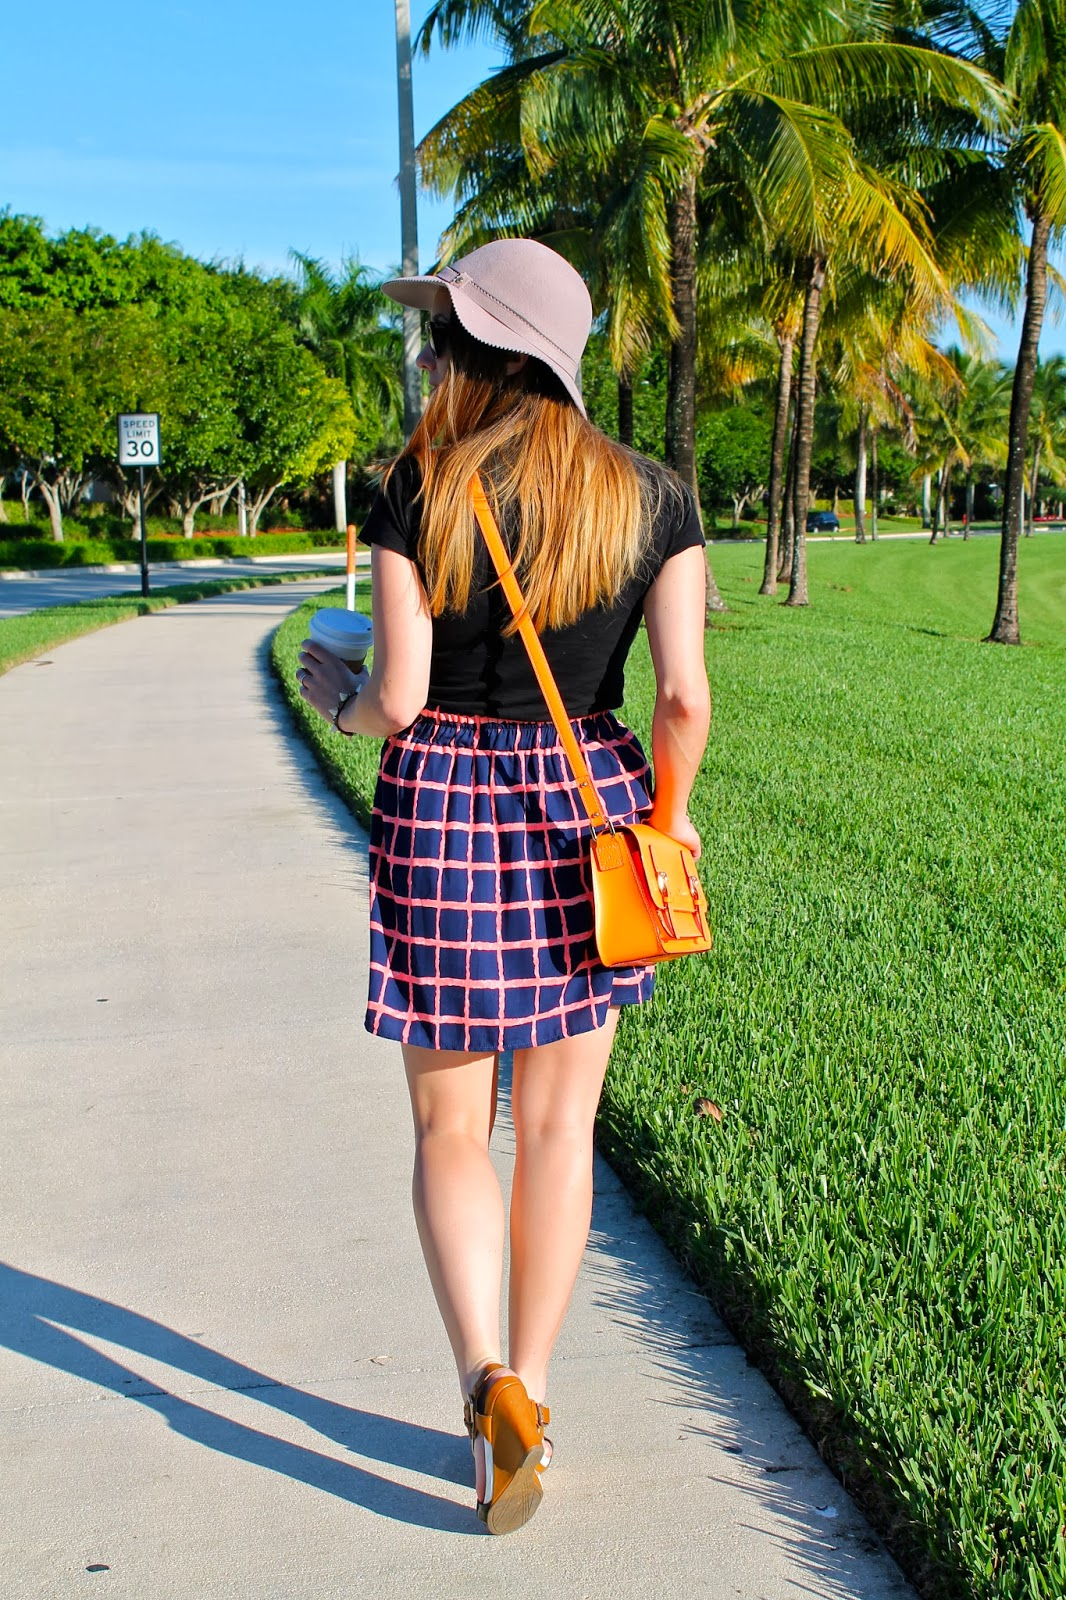 winter hats, felt hats, Miami fashion blogger, mini skirts, skater skirts, wedges, BCBGeneration, Nordstrom, Ray-Ban wayfarers, Kenneth Cole, Franchesca's, Kate Spade